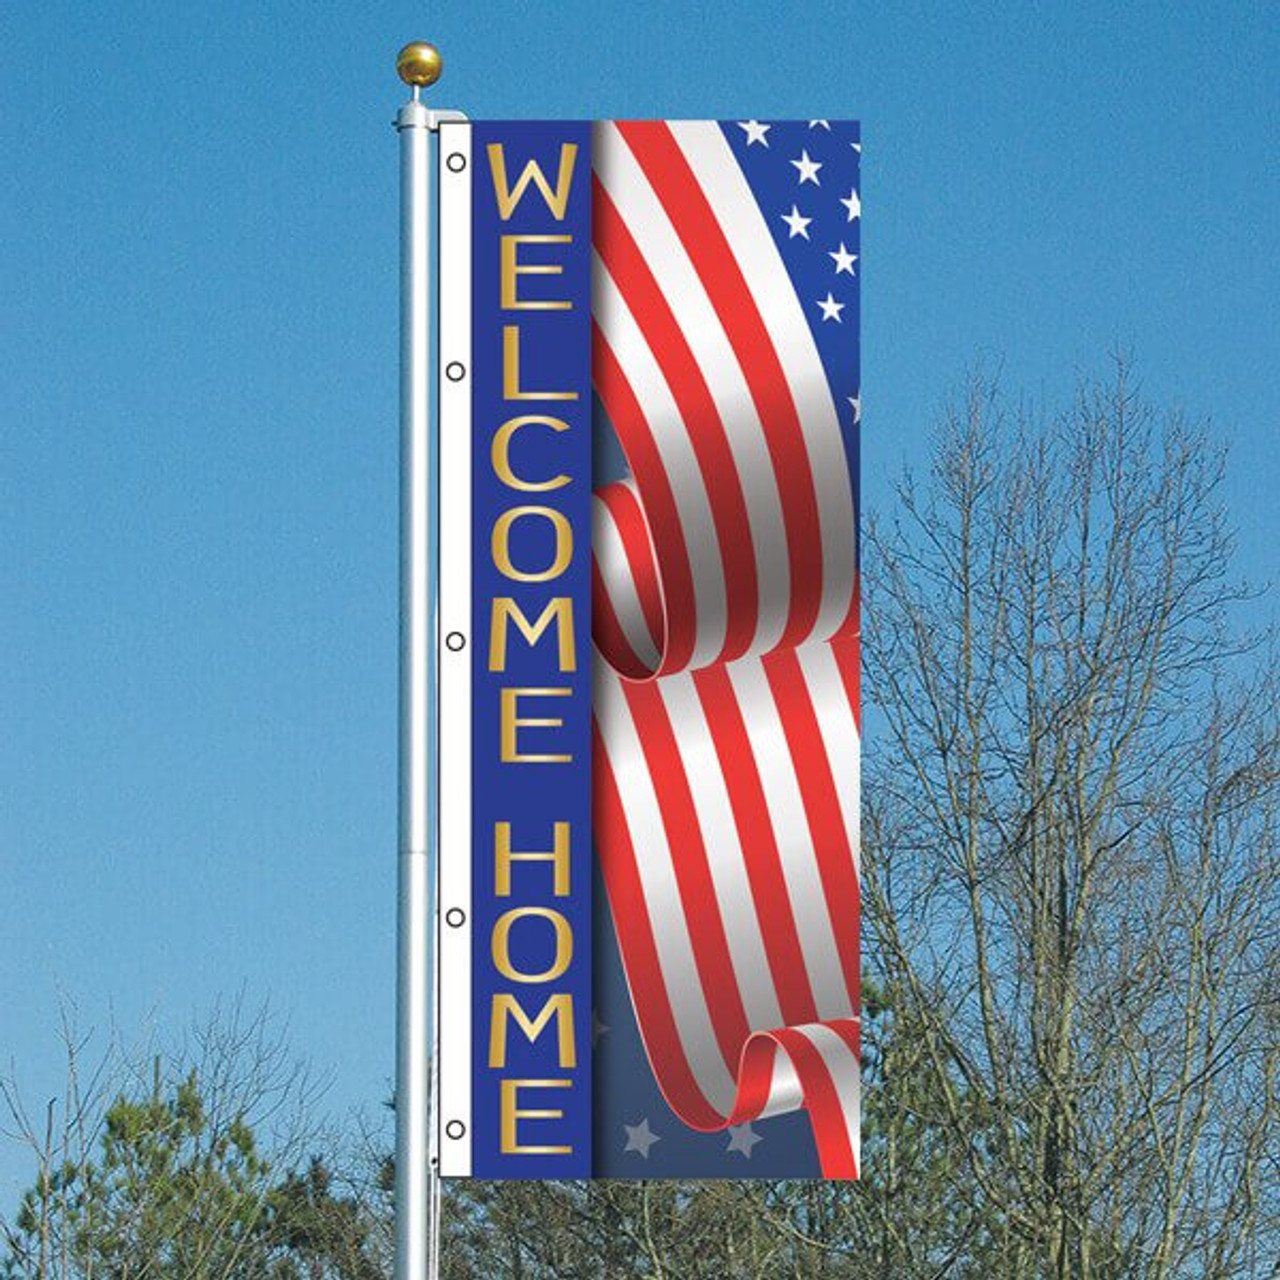 3' x 8' USA Welcome Home Vertical Flag